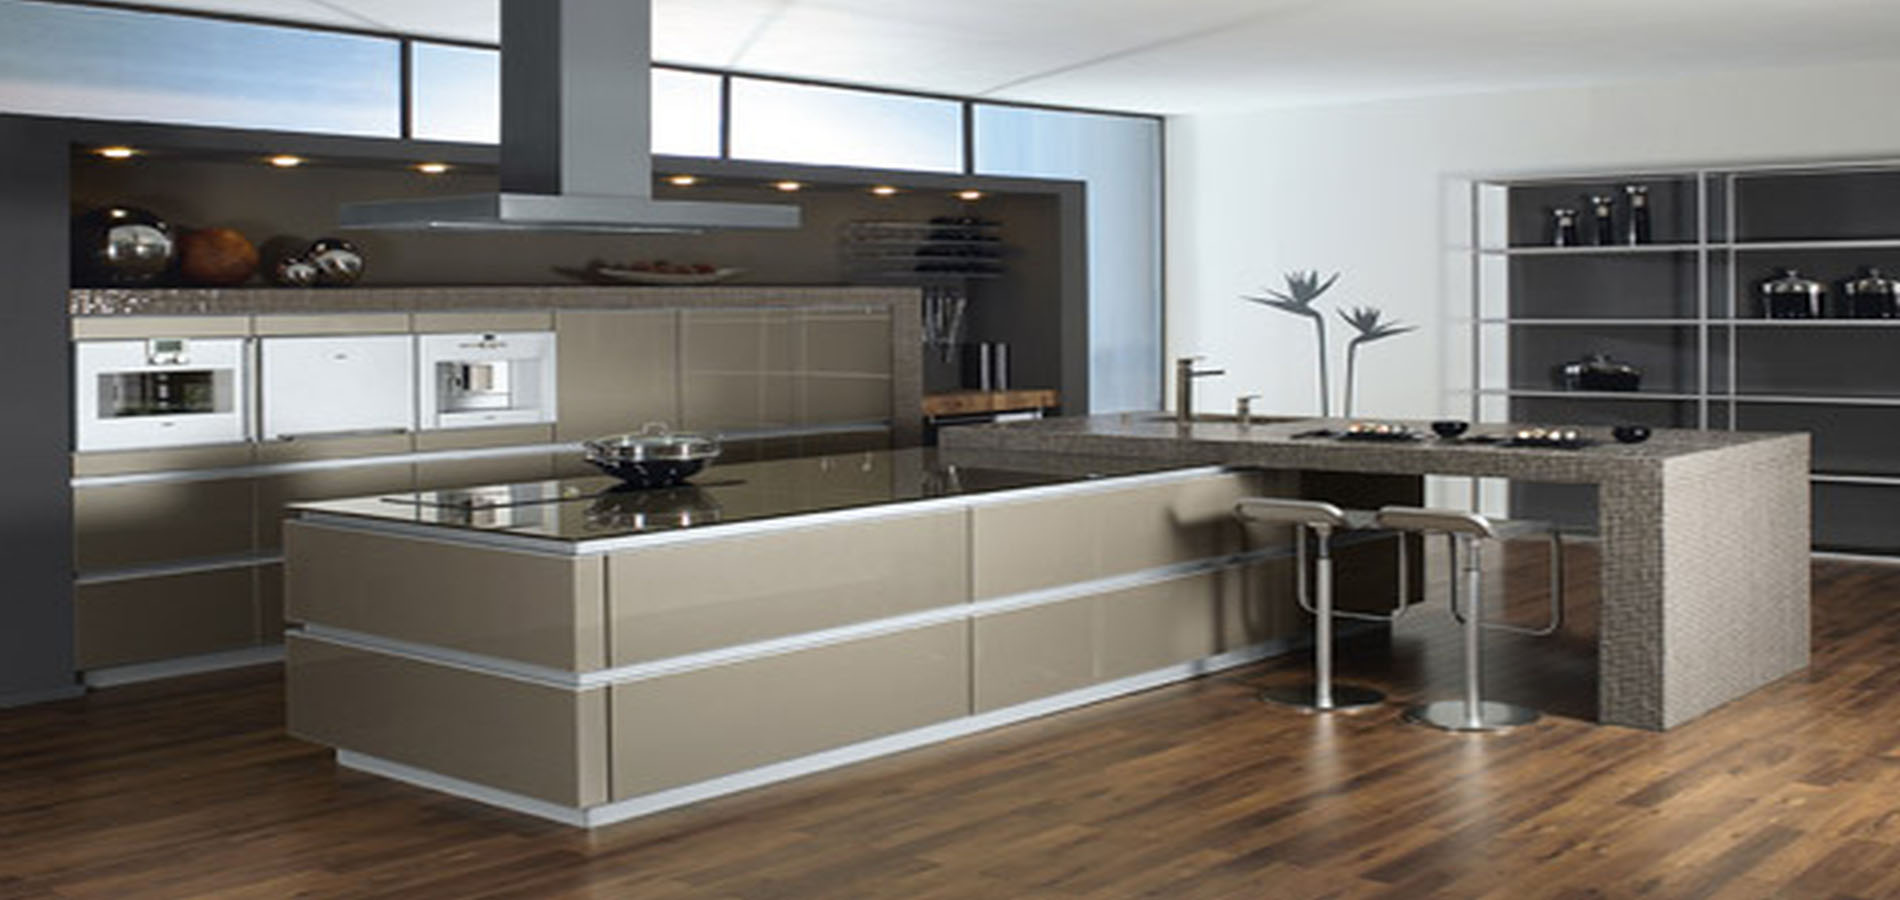 Cheap kitchen cabinet malaysia great design functional for Cheap modern kitchen designs